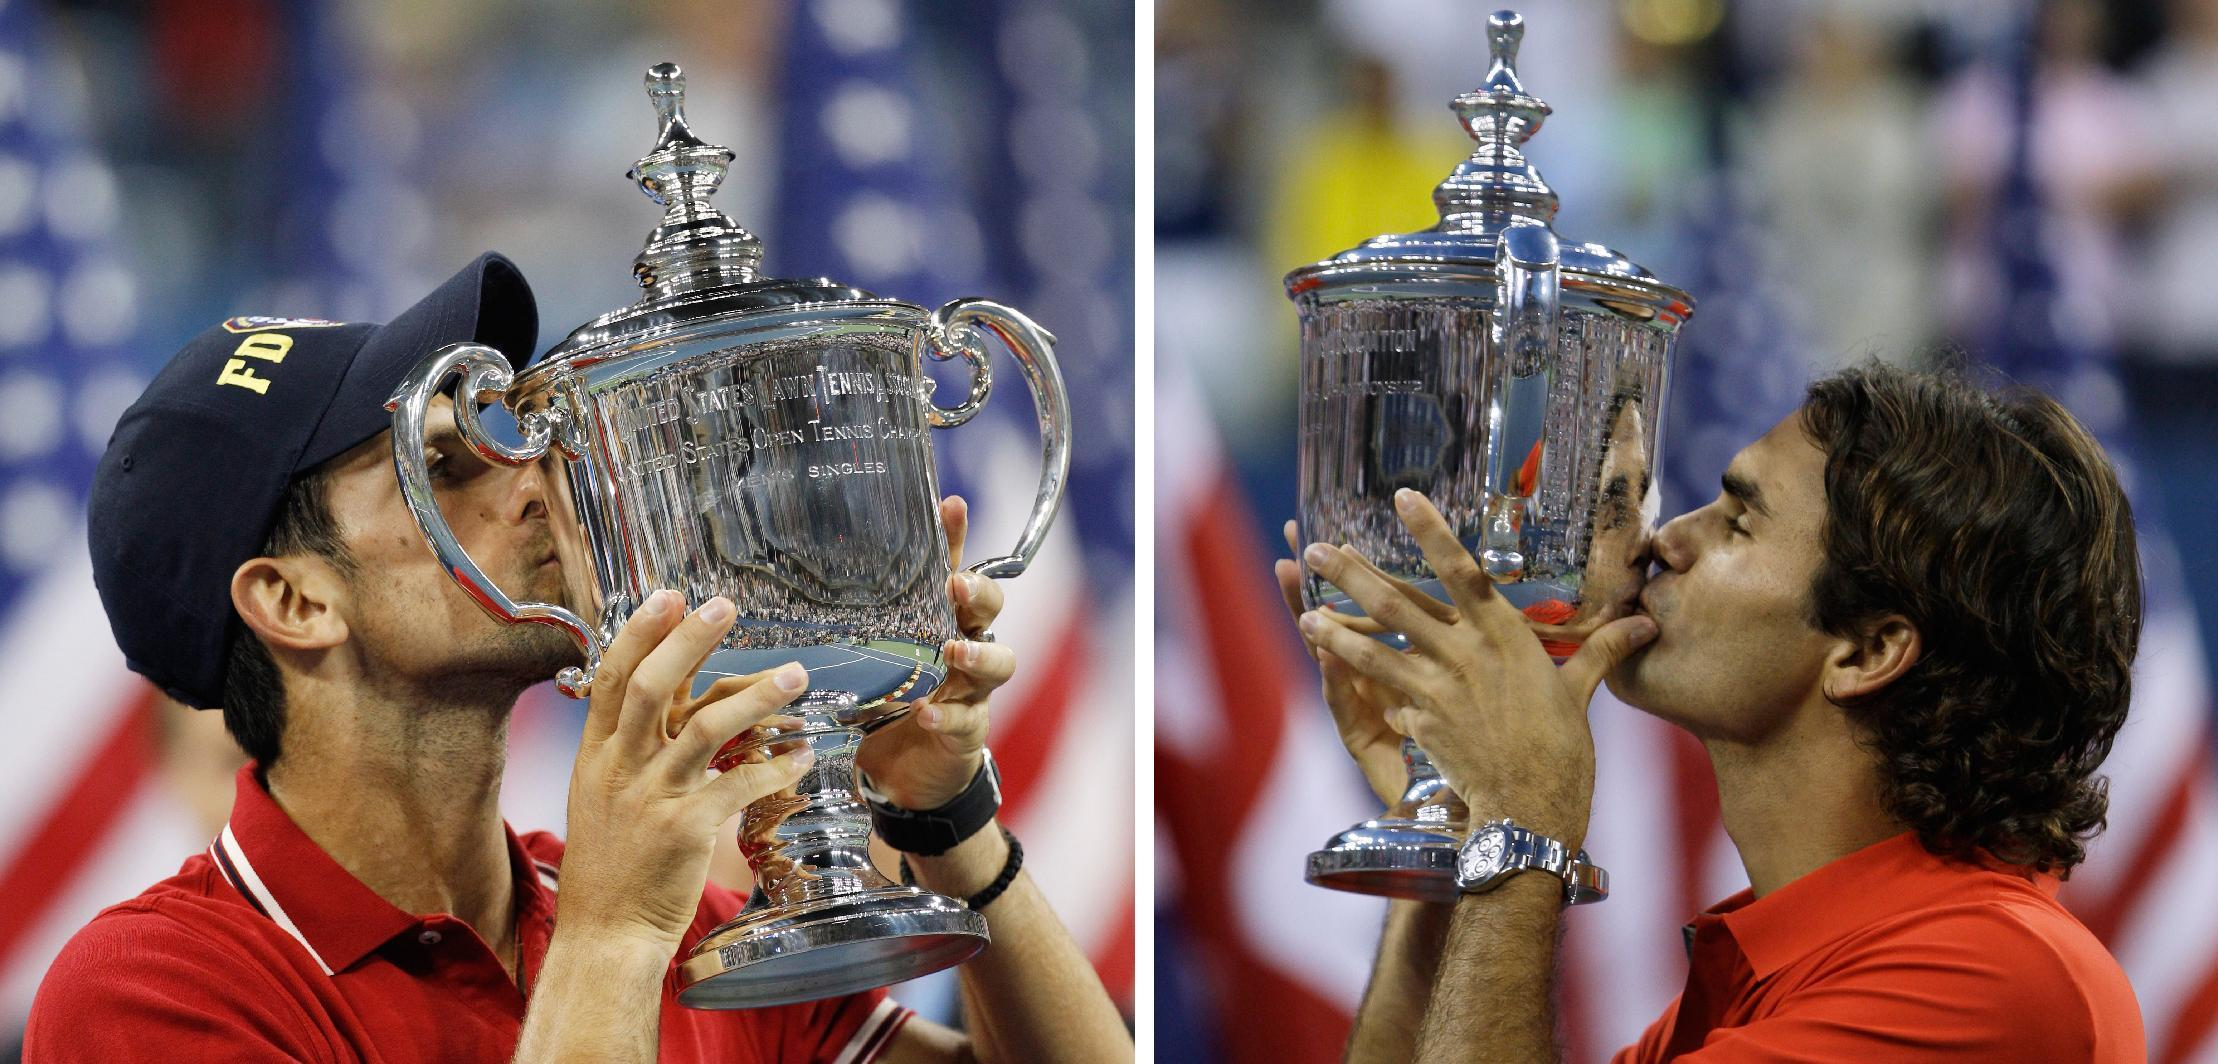 US OPEN 2015: What to watch aside from Williams in New York